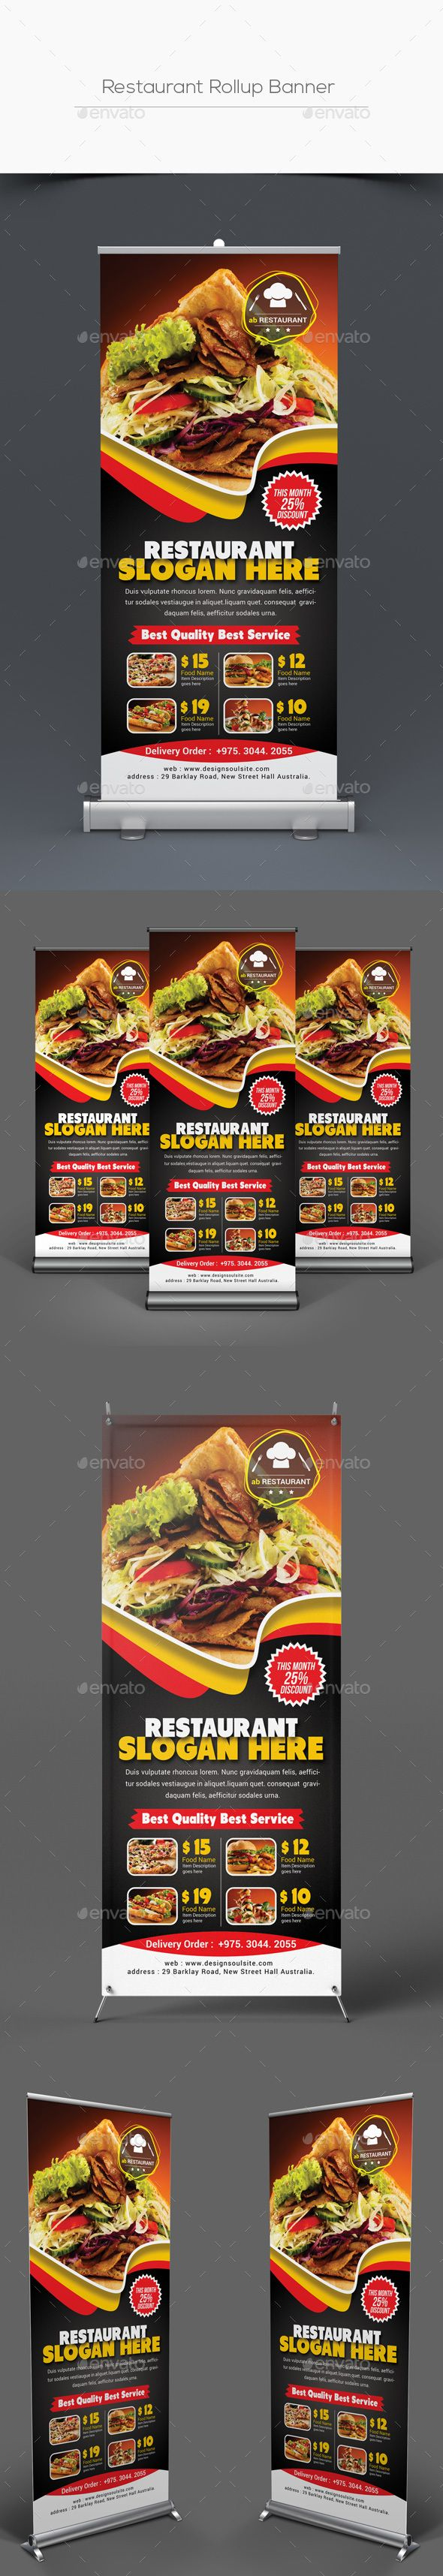 Restaurant Rollup Banner #bbq rollup banner #coffee flyer Download : graphicrive...